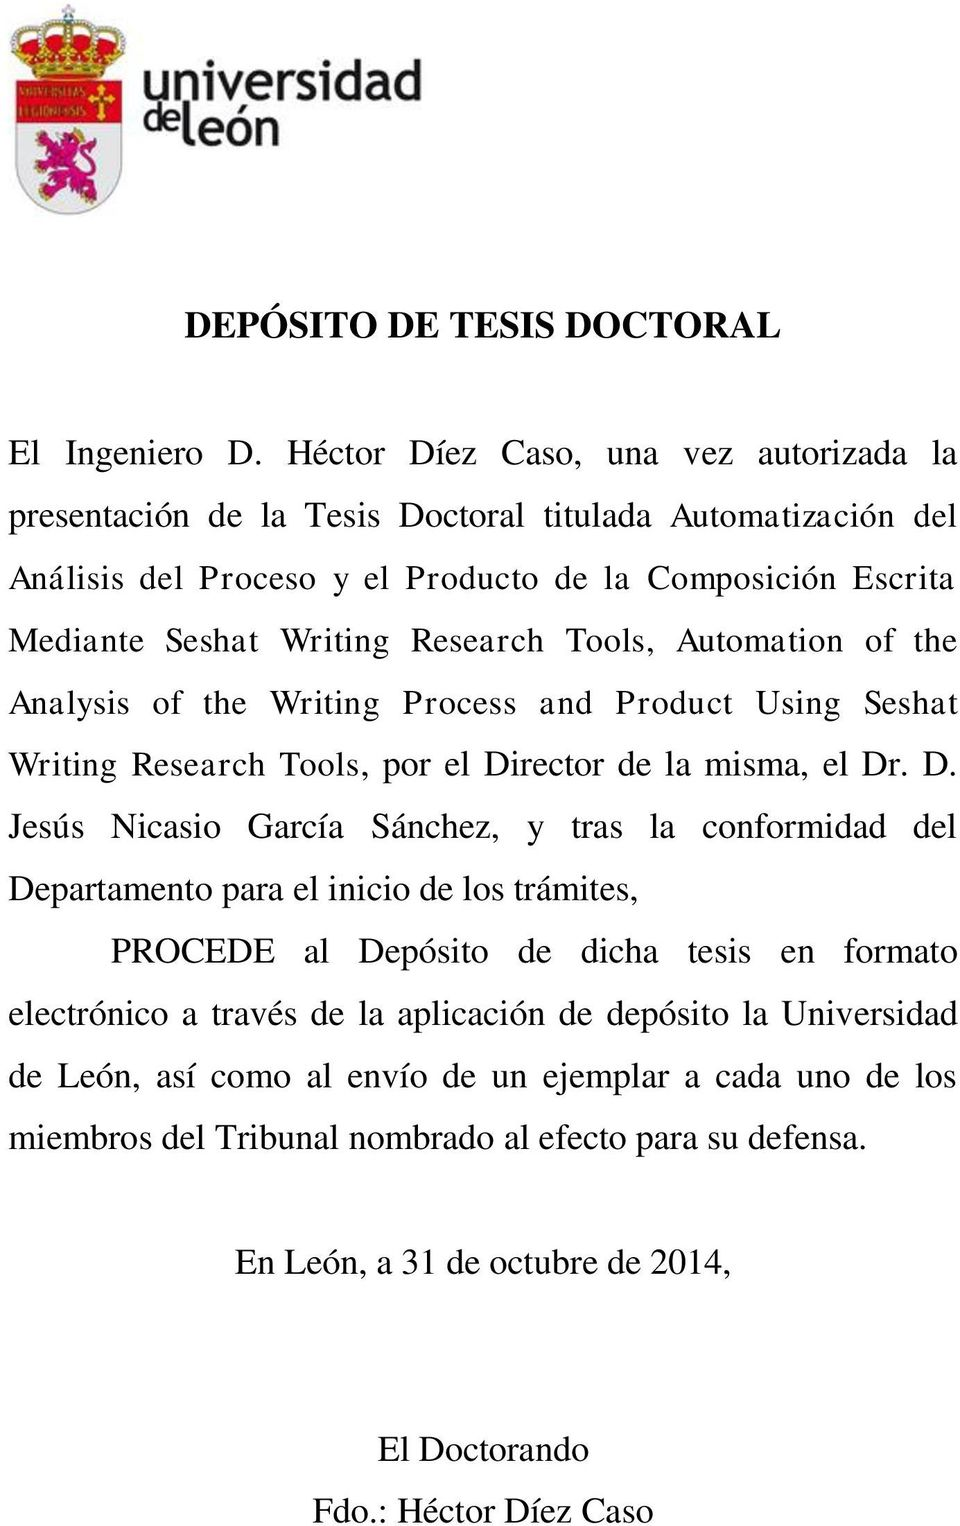 Tools, Automation of the Analysis of the Writing Process and Product Using Seshat Writing Research Tools, por el Di